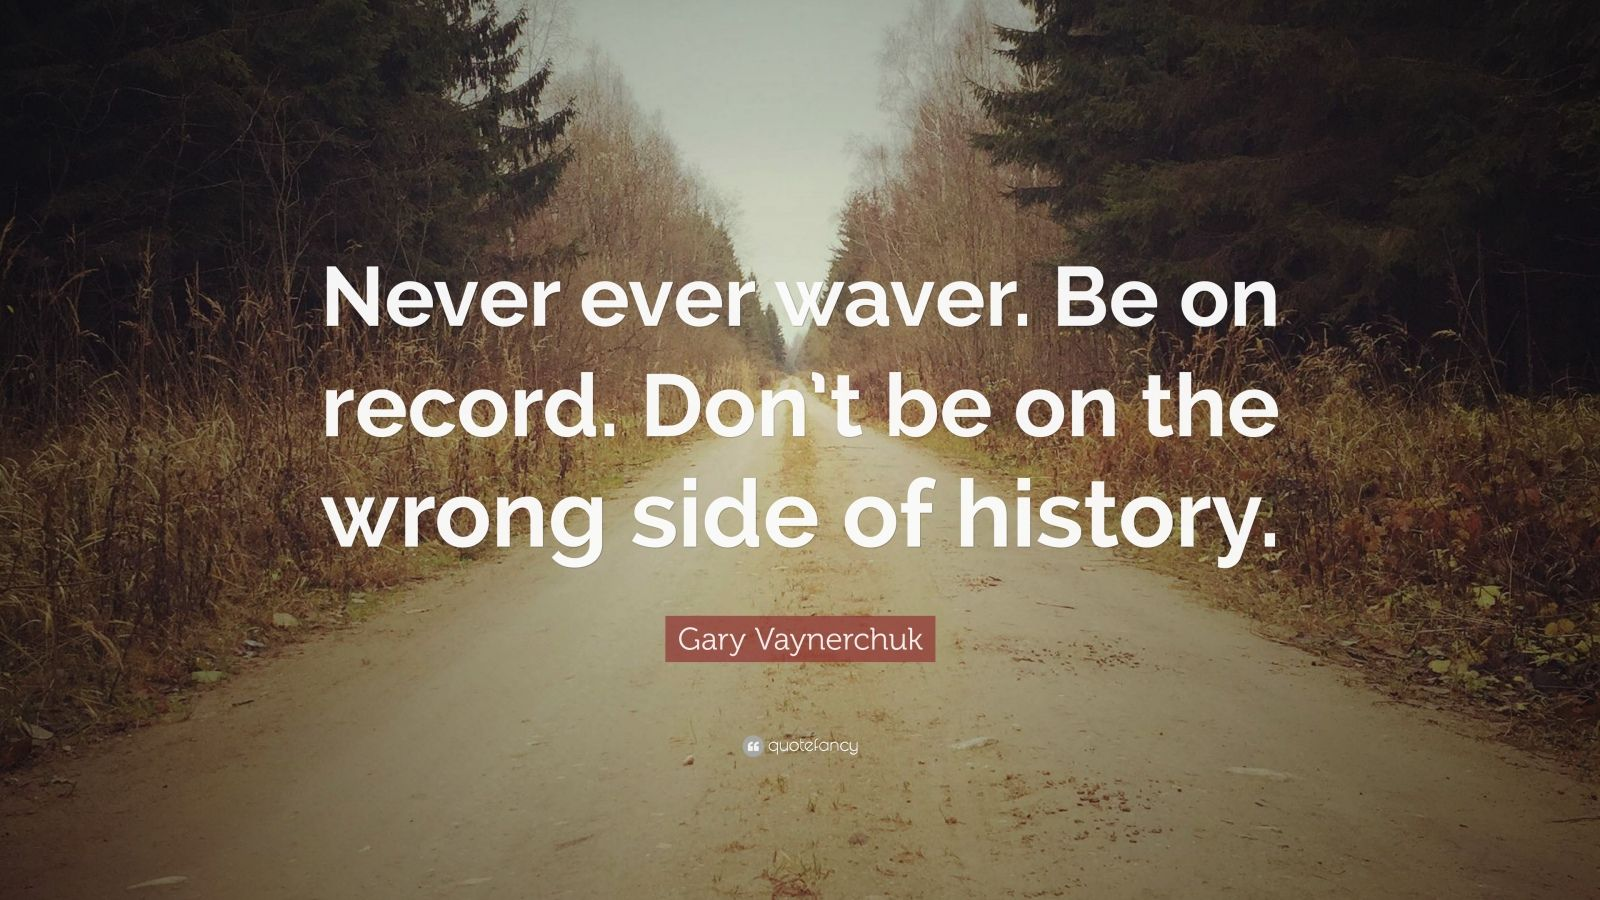 """Gary Vaynerchuk Quote: """"Never ever waver. Be on record. Don't be on the wrong side of history."""""""